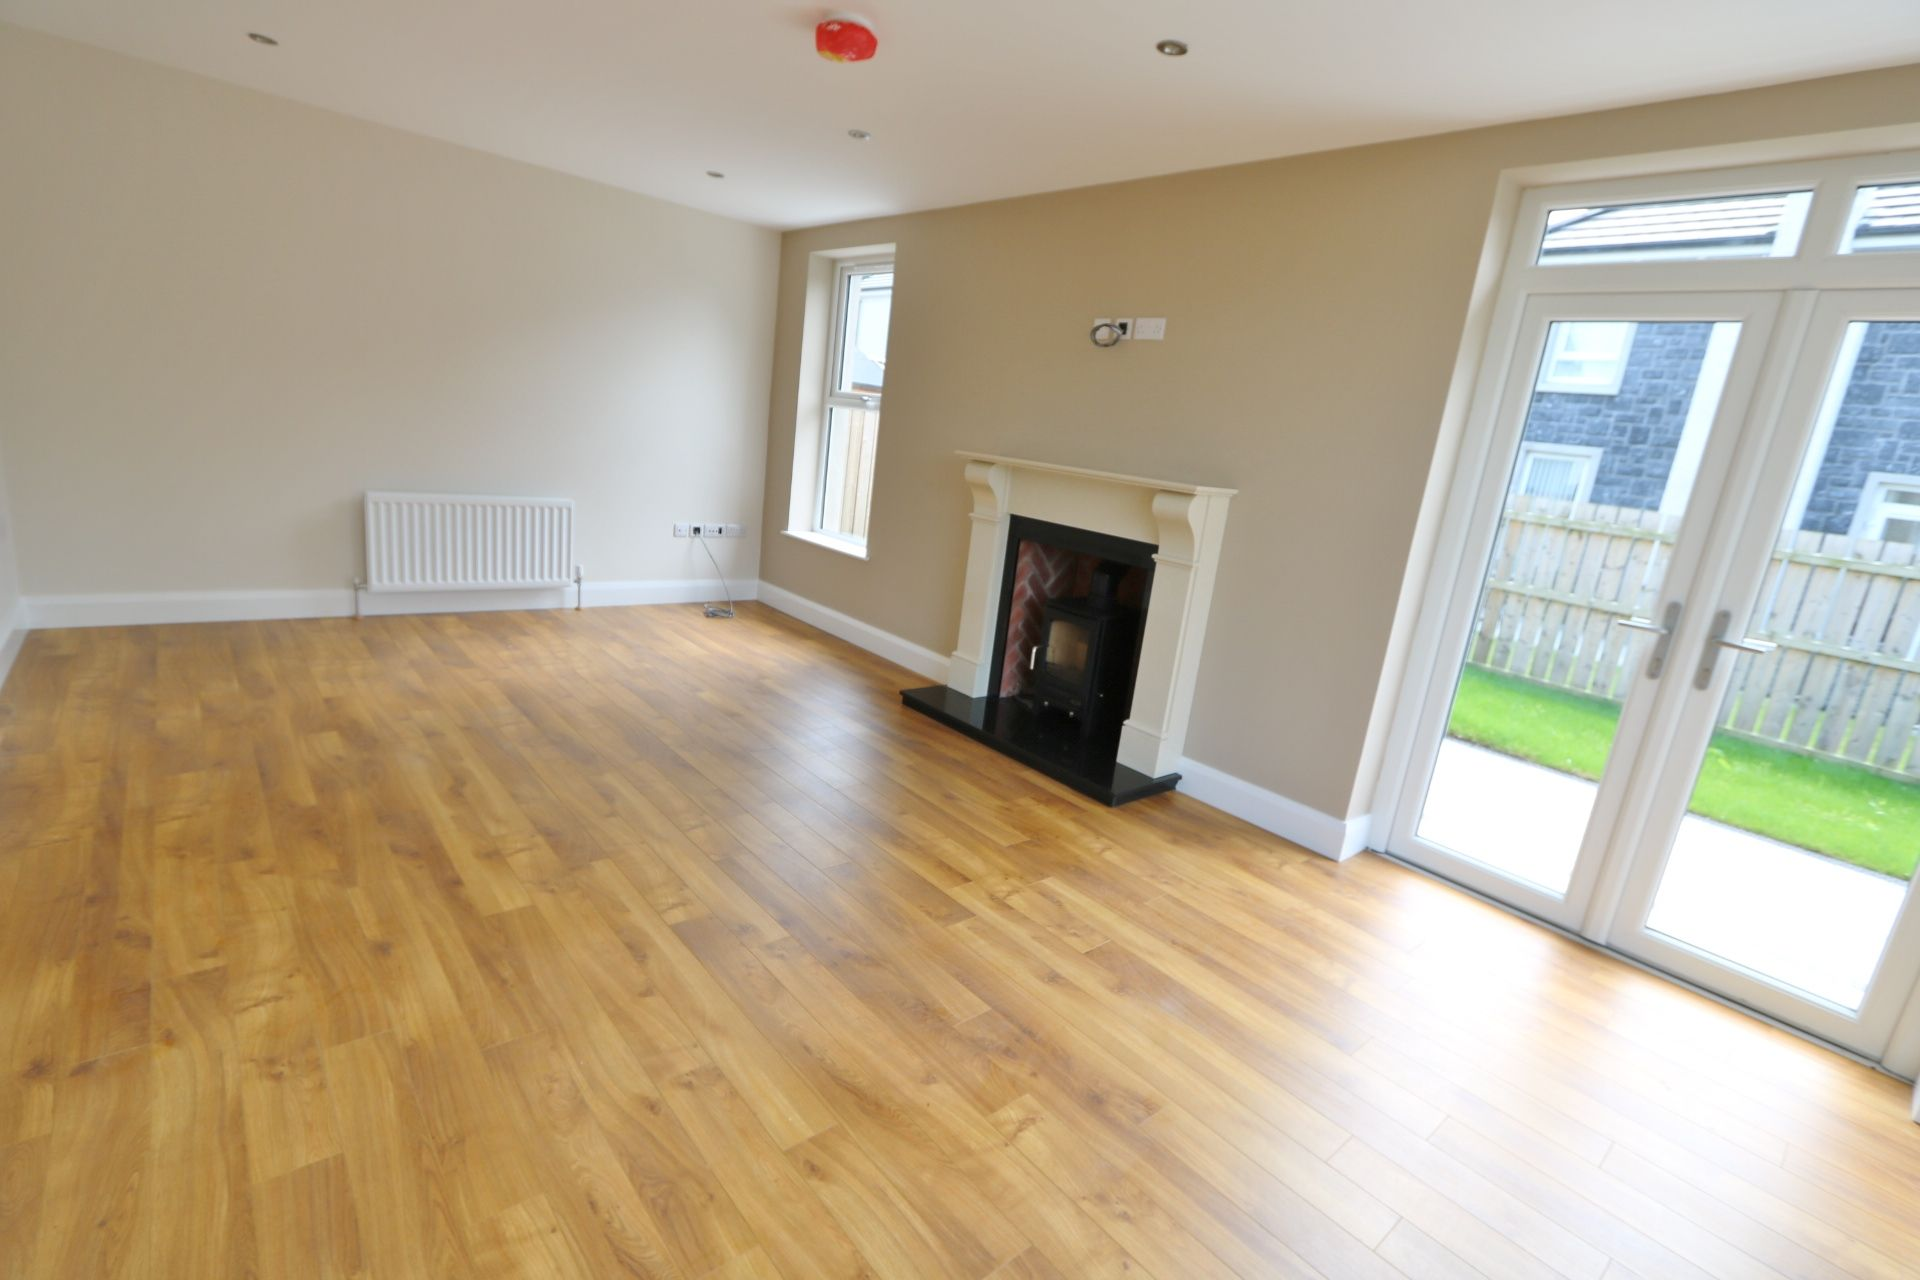 3 bedroom detached house For Sale in Milltown - Photograph 9